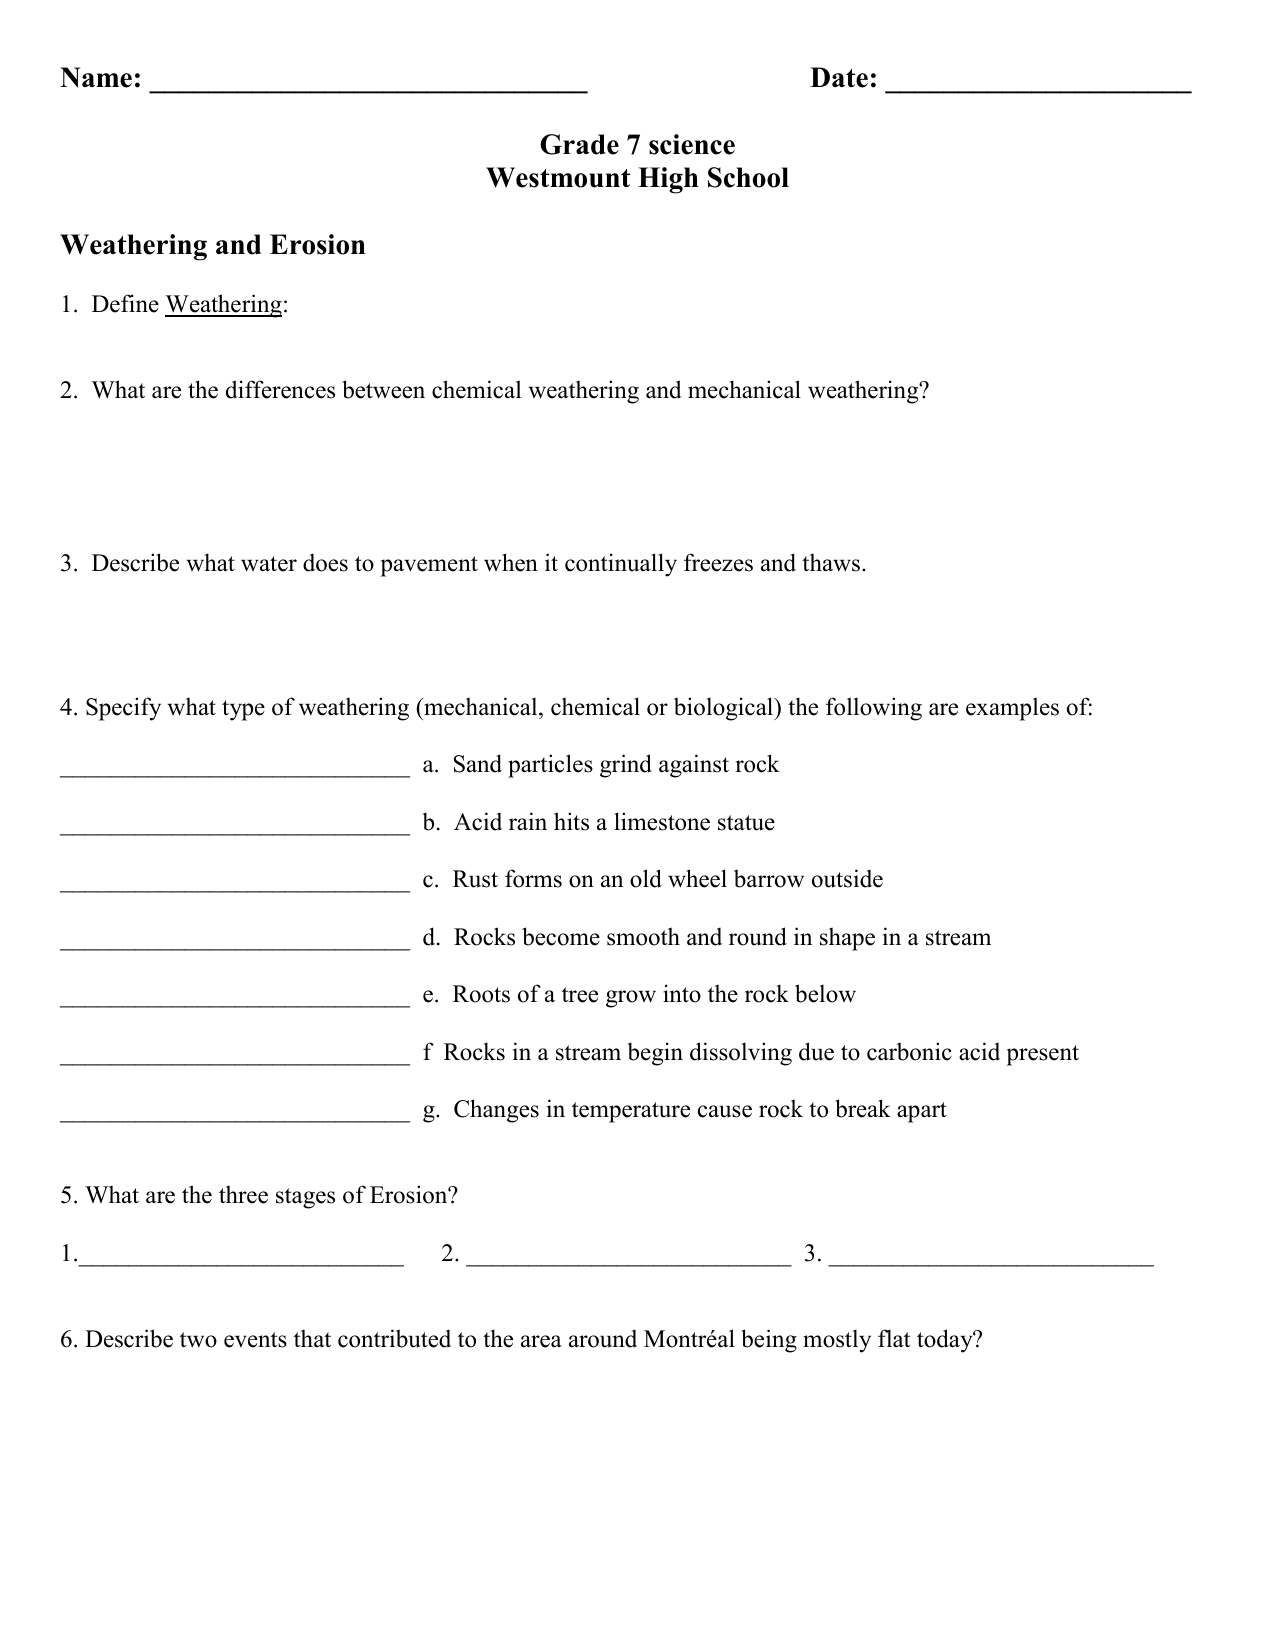 Weathering worksheet modified